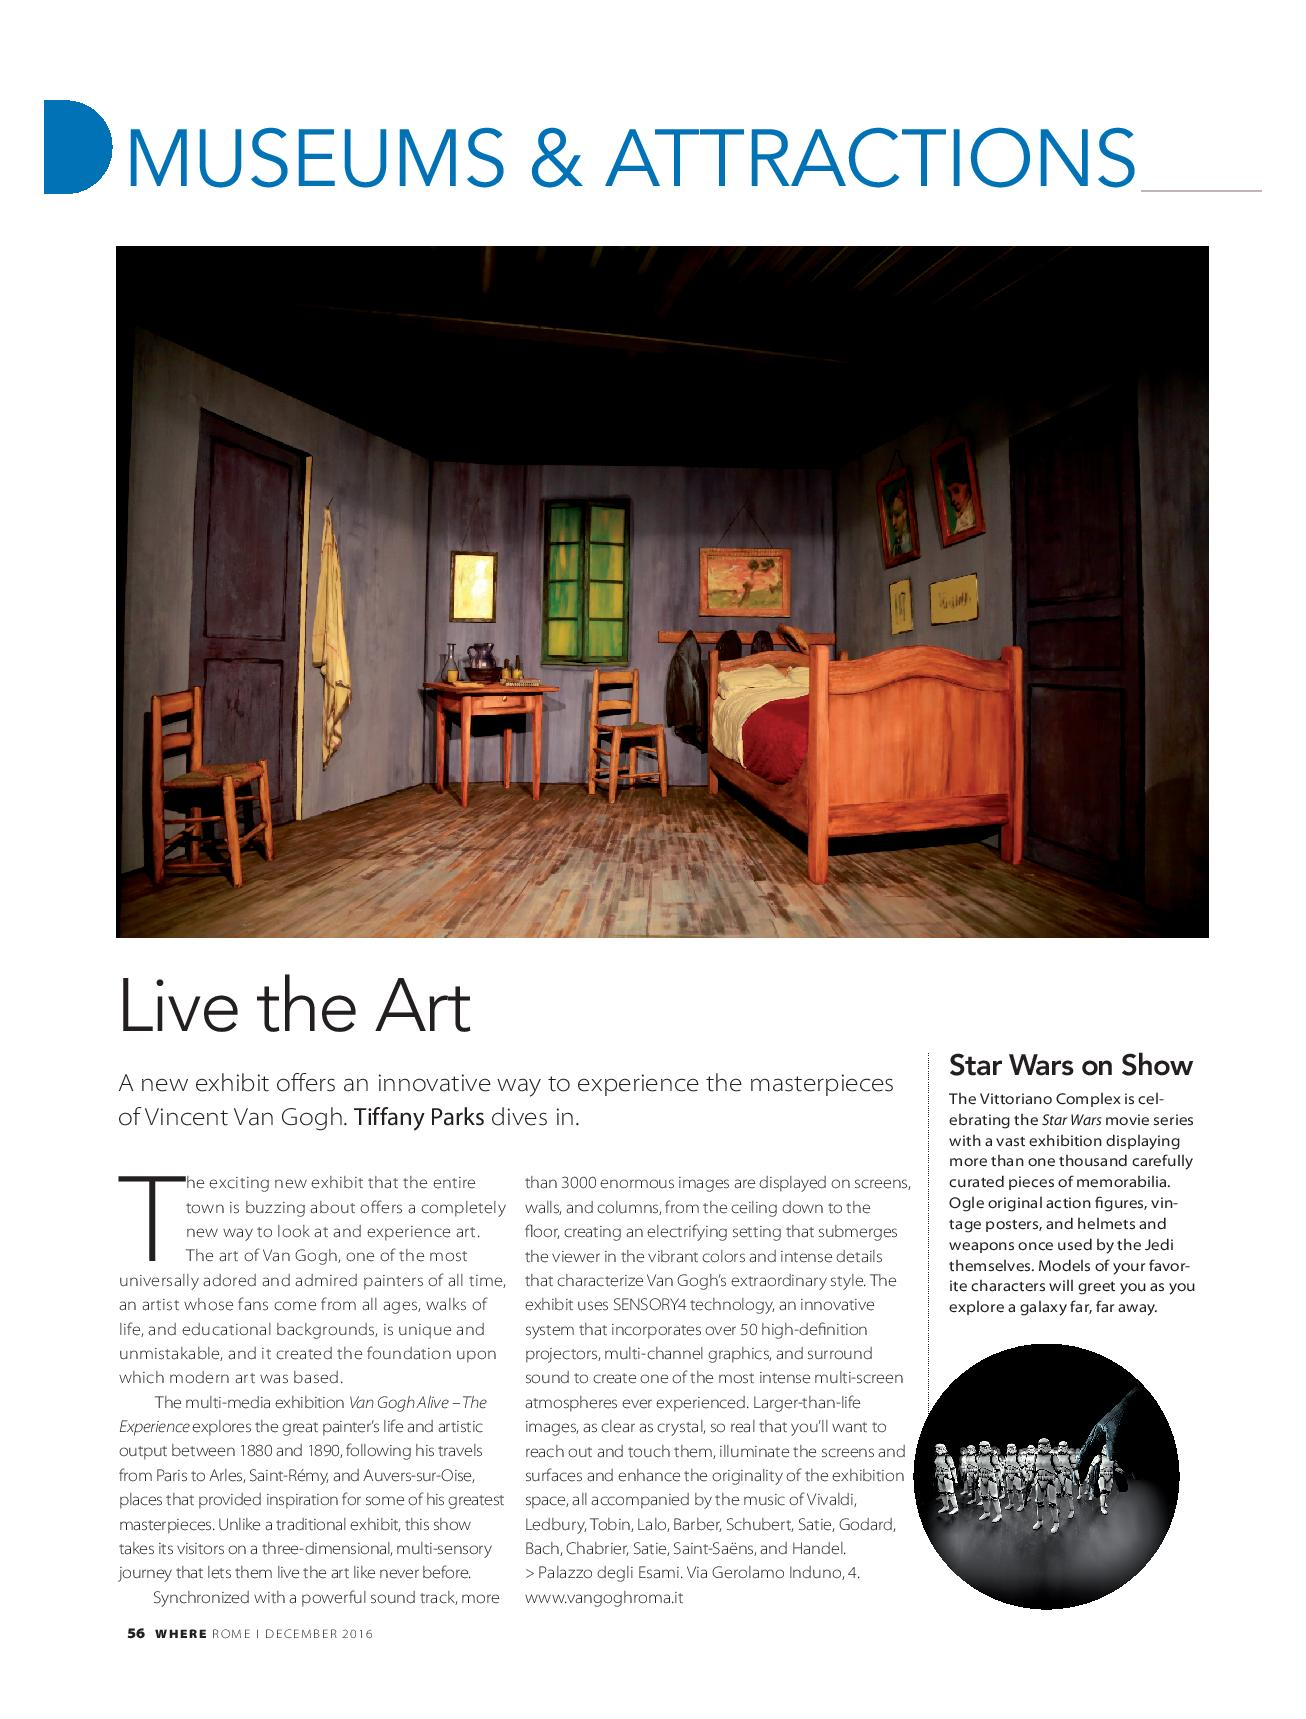 Live the Art, Where Rome, December 2016-page-001.jpg